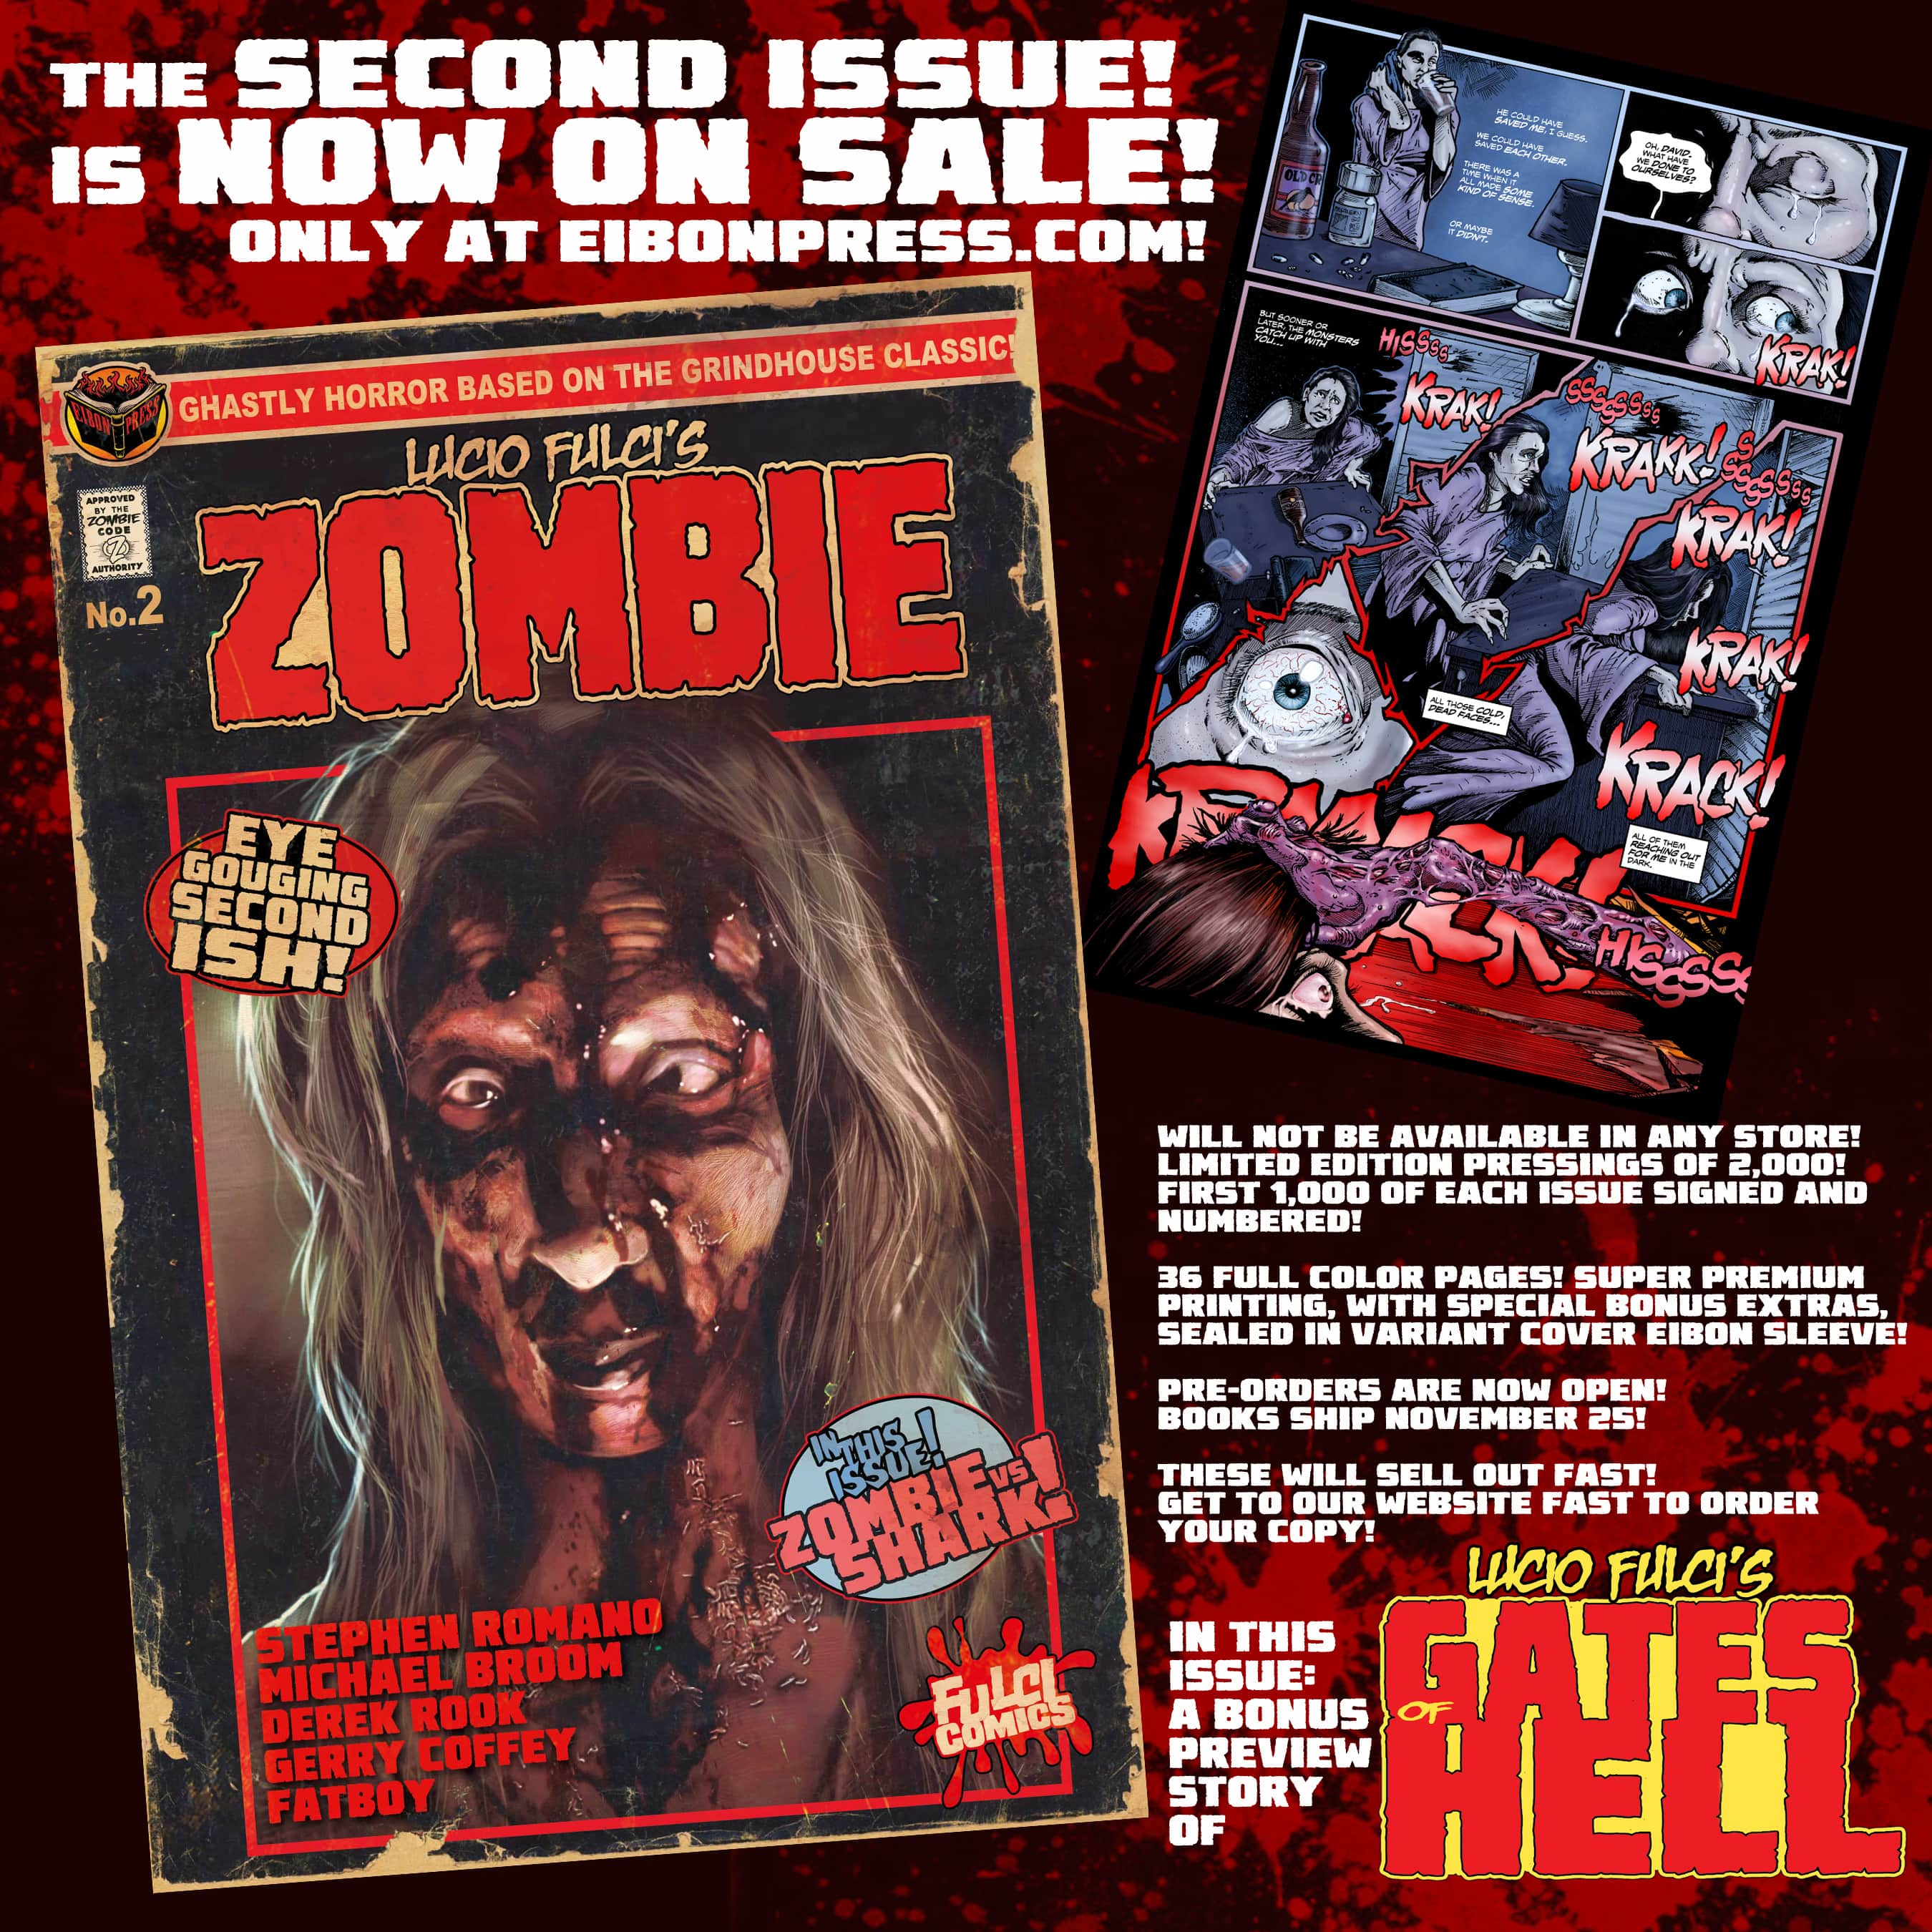 ZOMBIE ISSUE 2 black ad min - Lucio Fulci's ZOMBIE Issue 2 now on sale from Eibon Press!